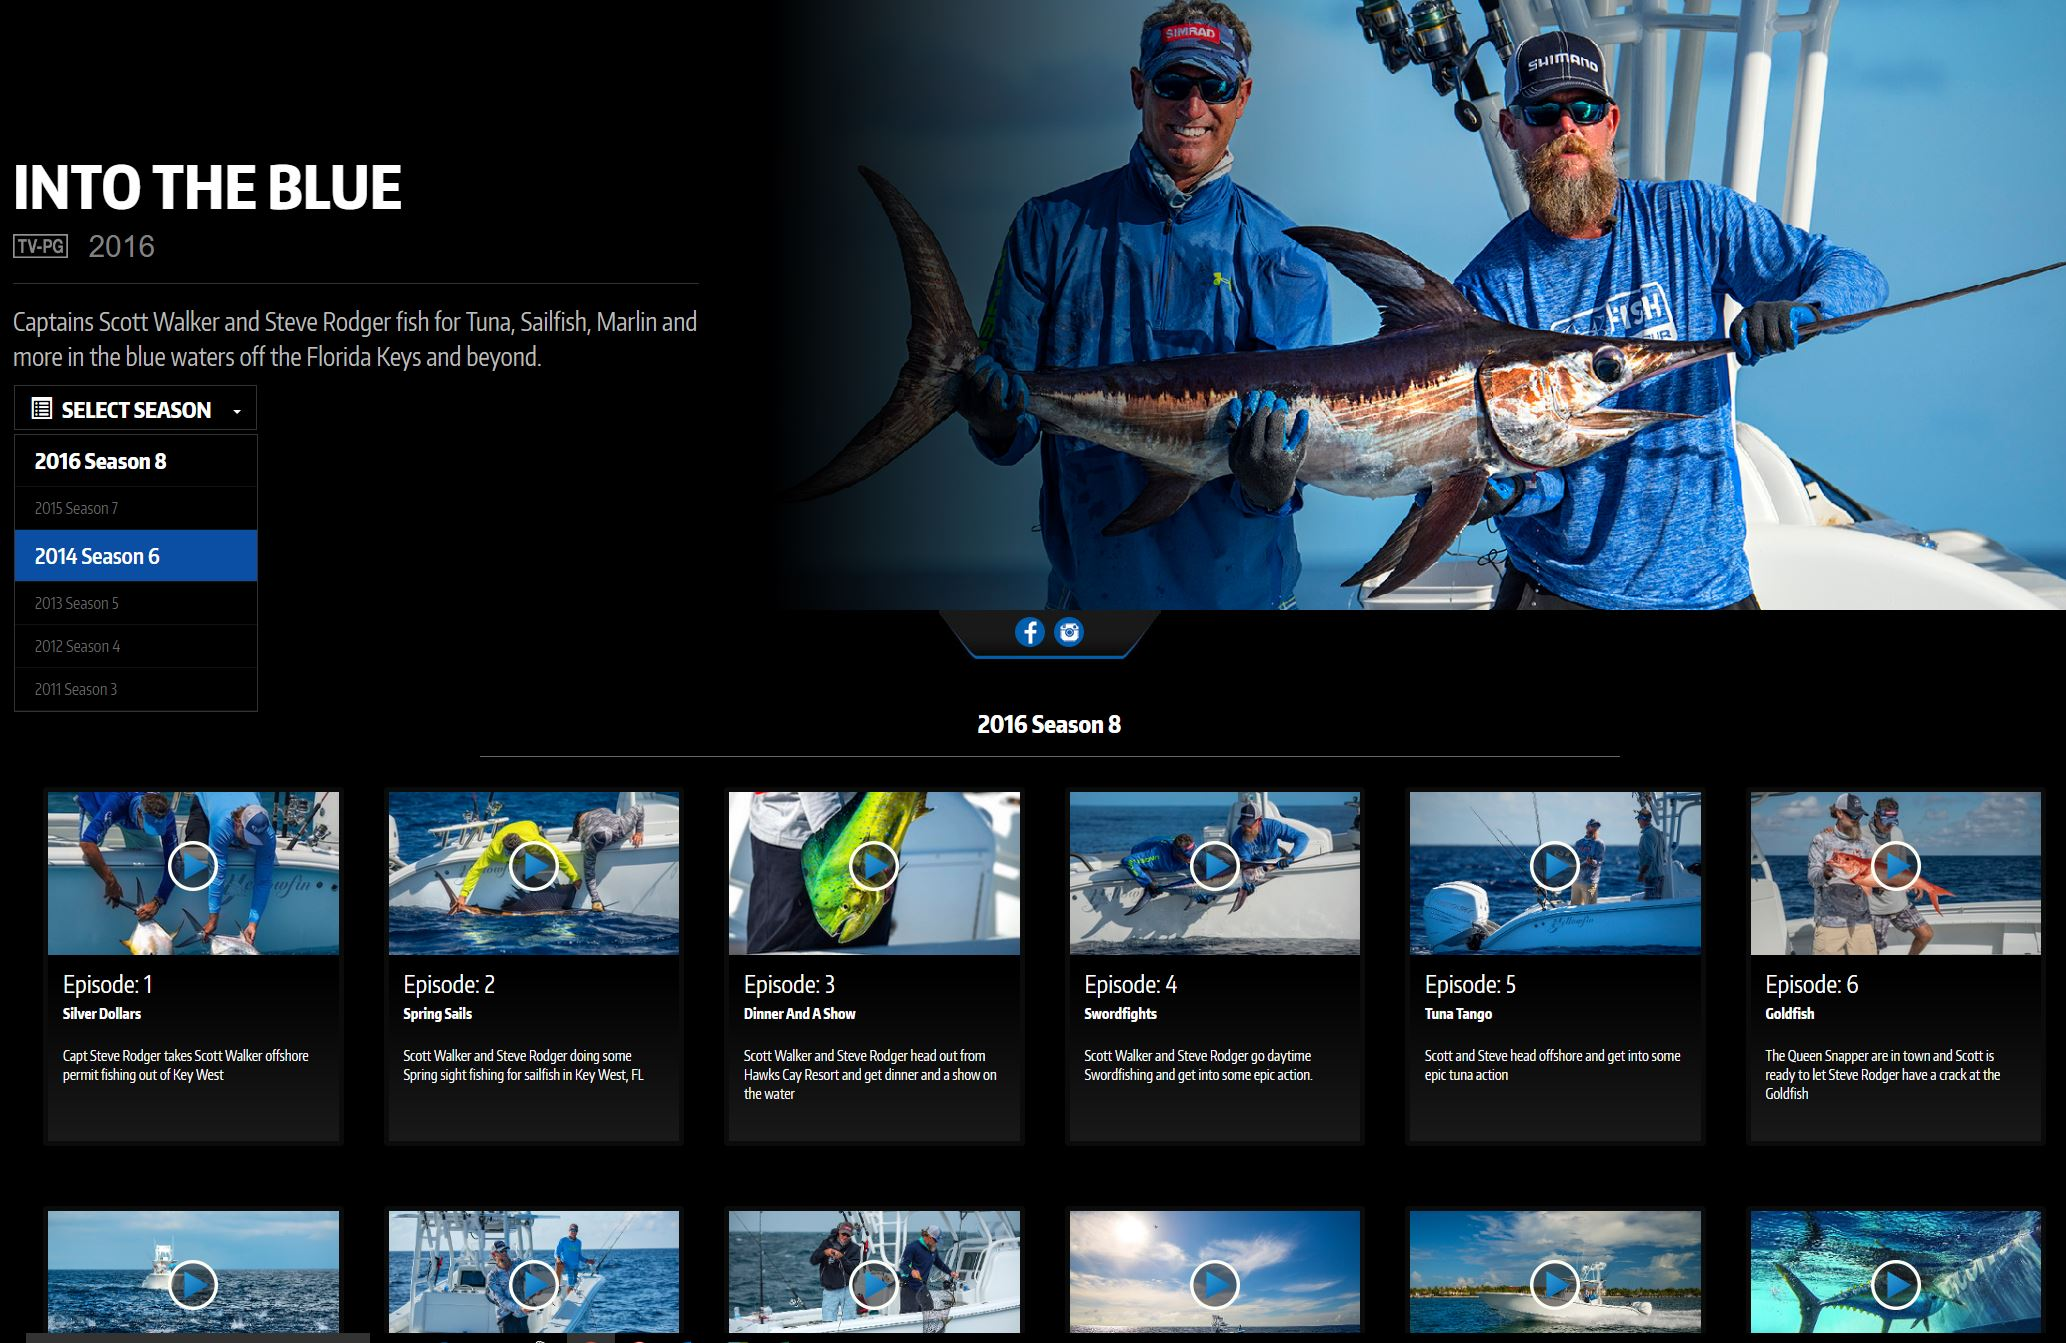 Watch full length episodes of Into the Blue on Waypoint TV